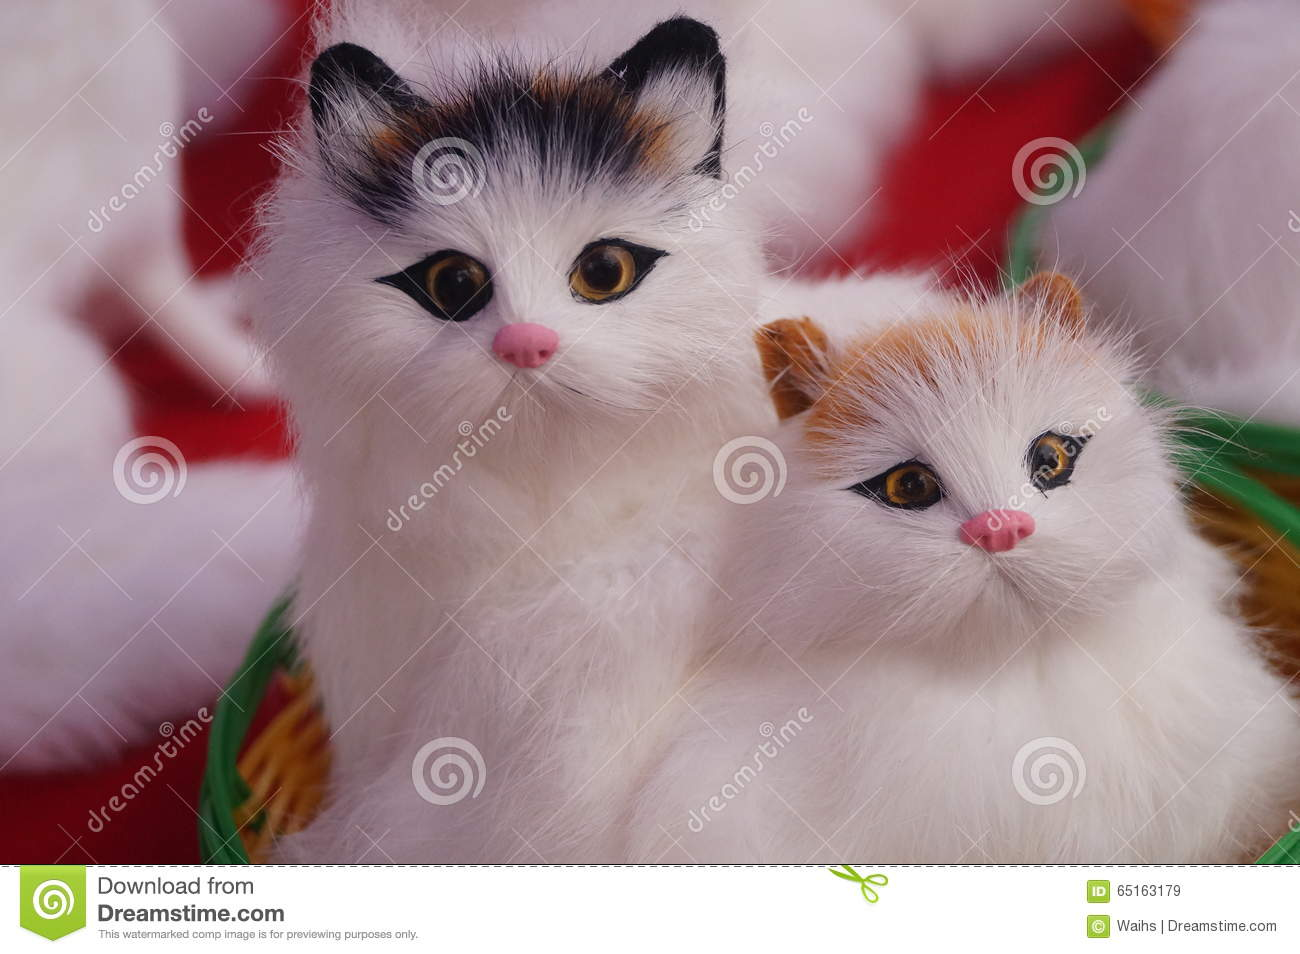 cute cat toys stock image. image of animals, life, objects - 65163179